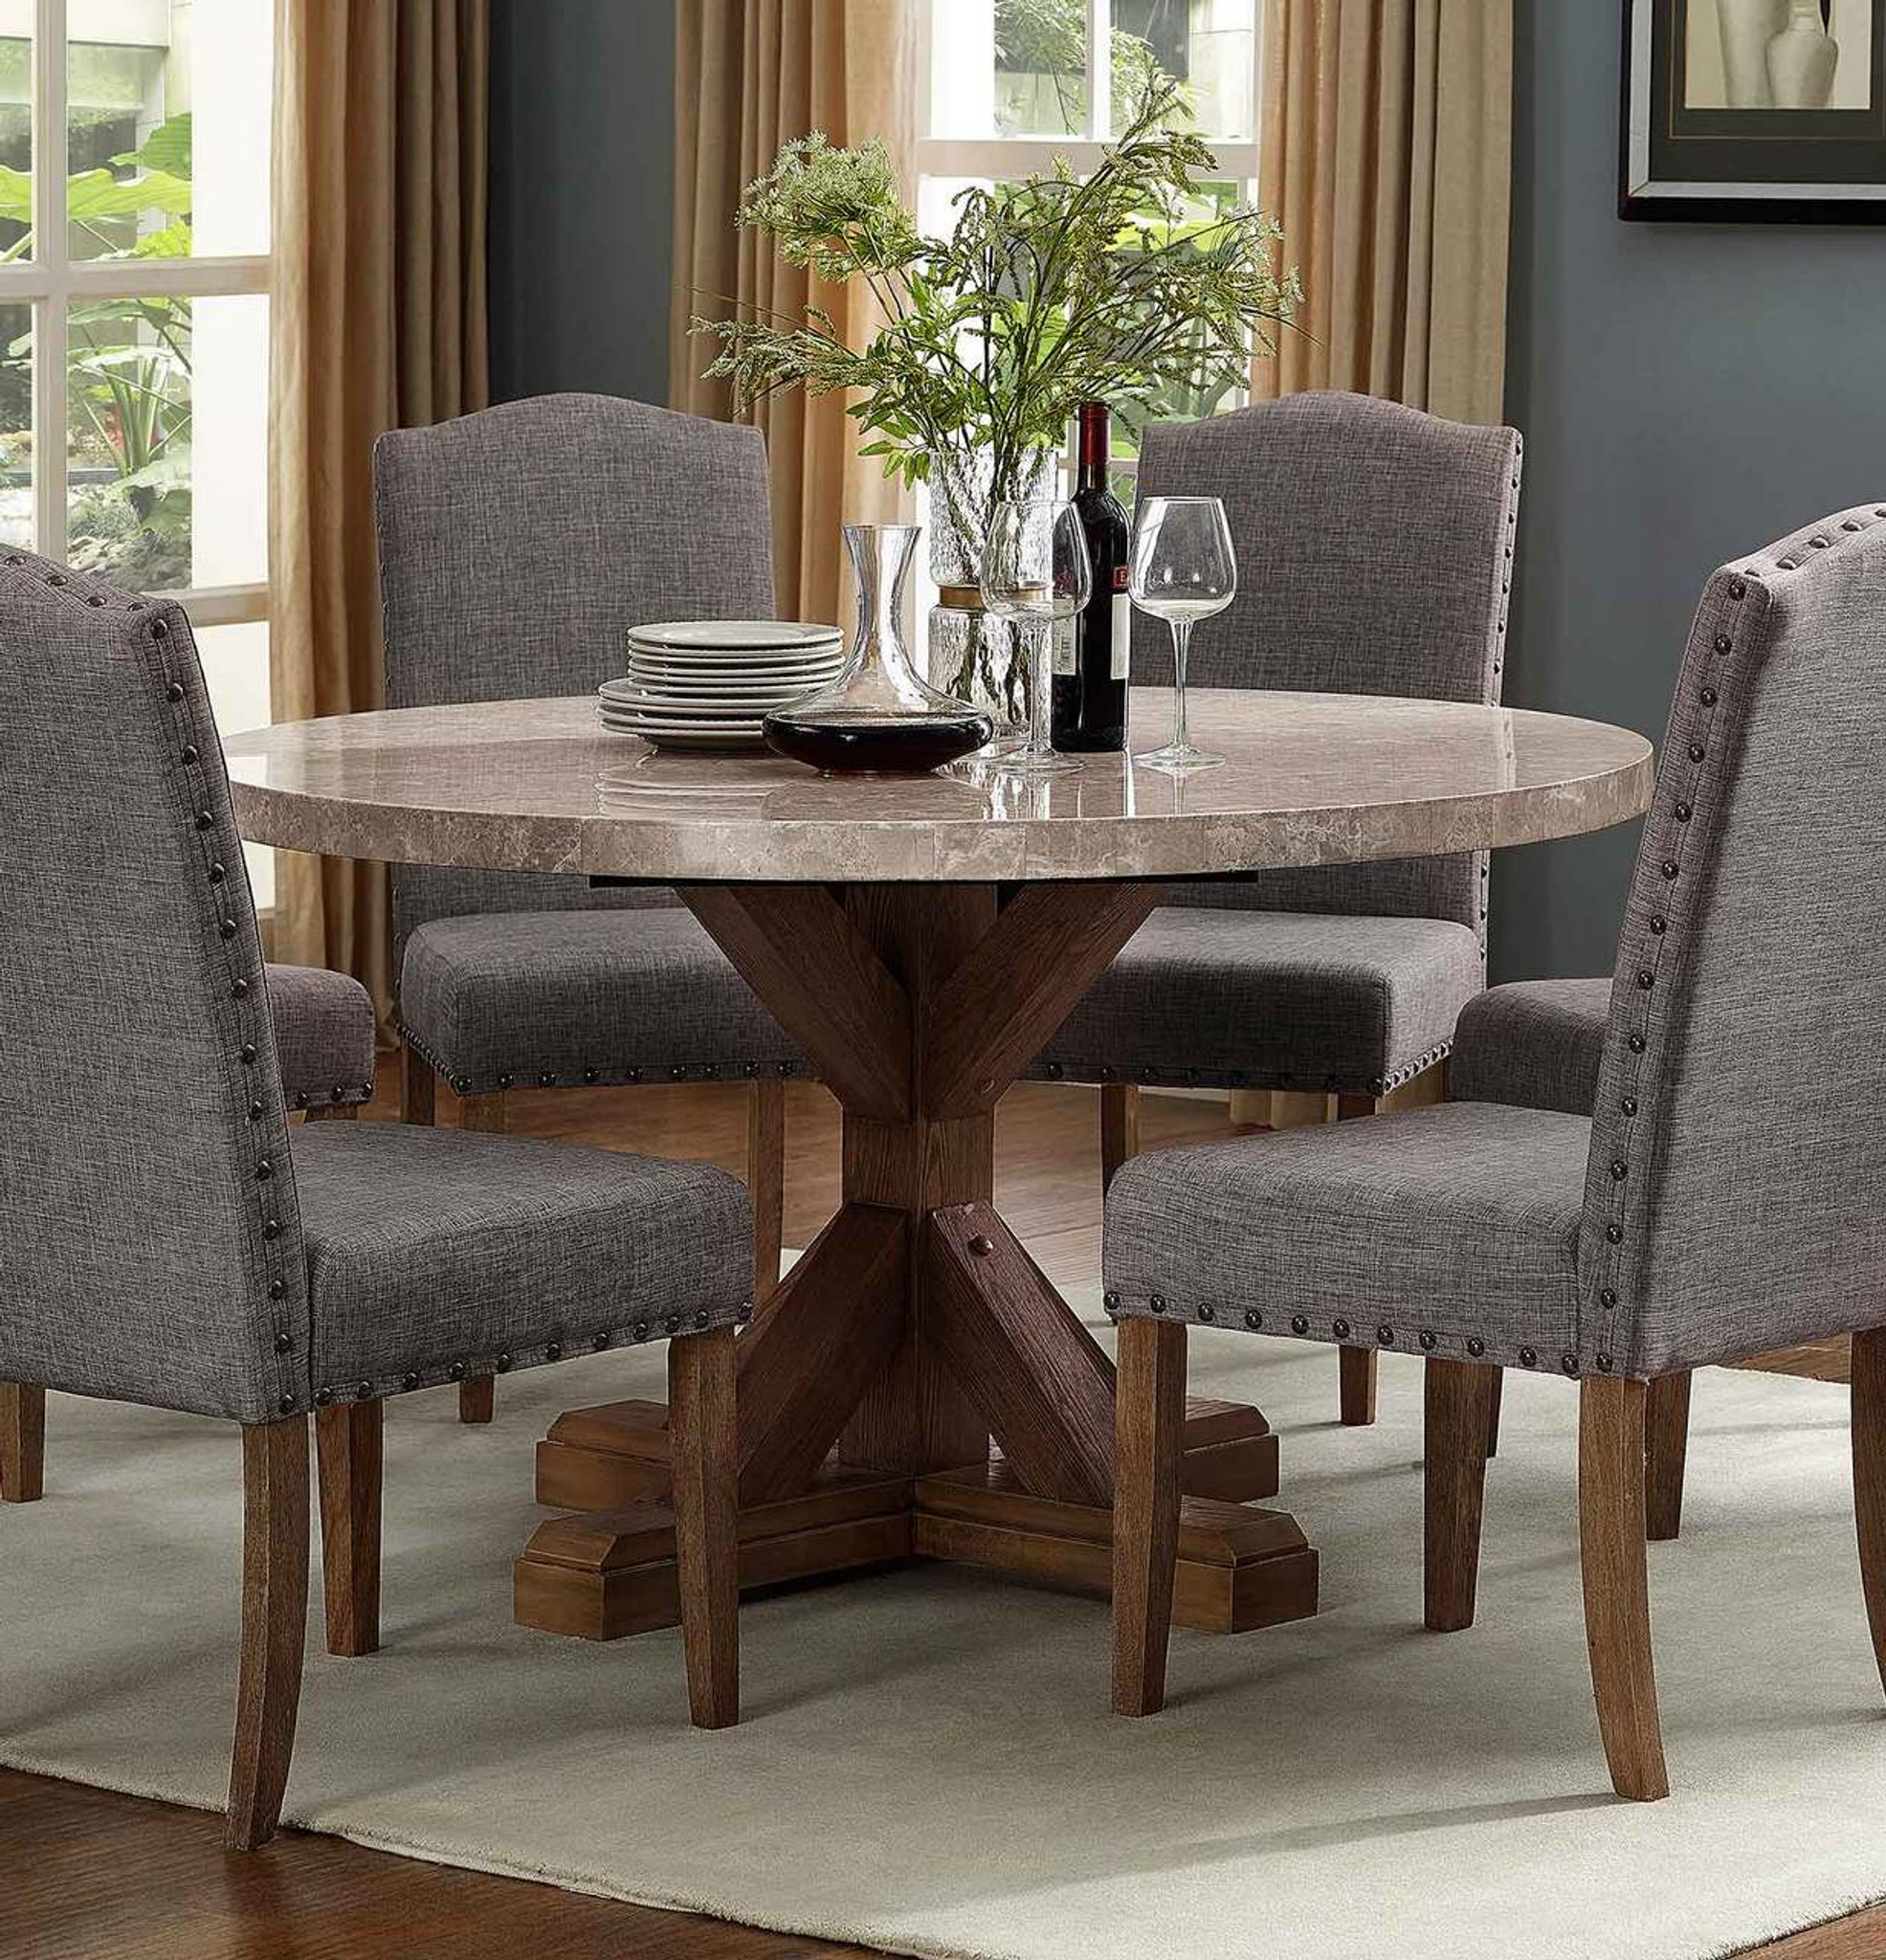 1211t 54 R Vesper Round Marble Dining Table Collection By Crown Mark